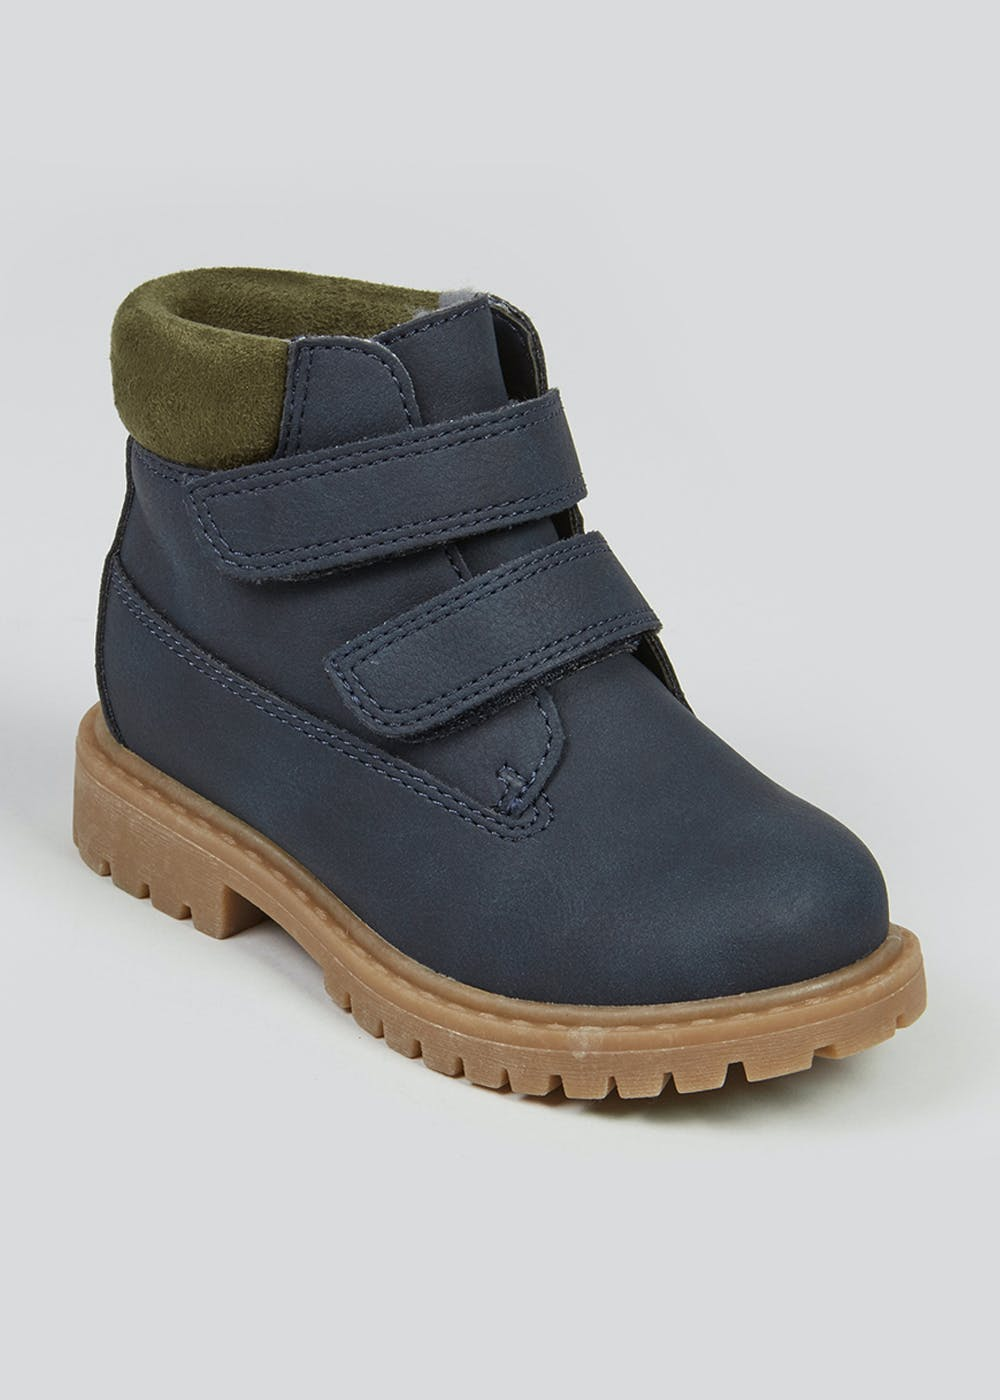 Boys Footwear - Boots, Trainers